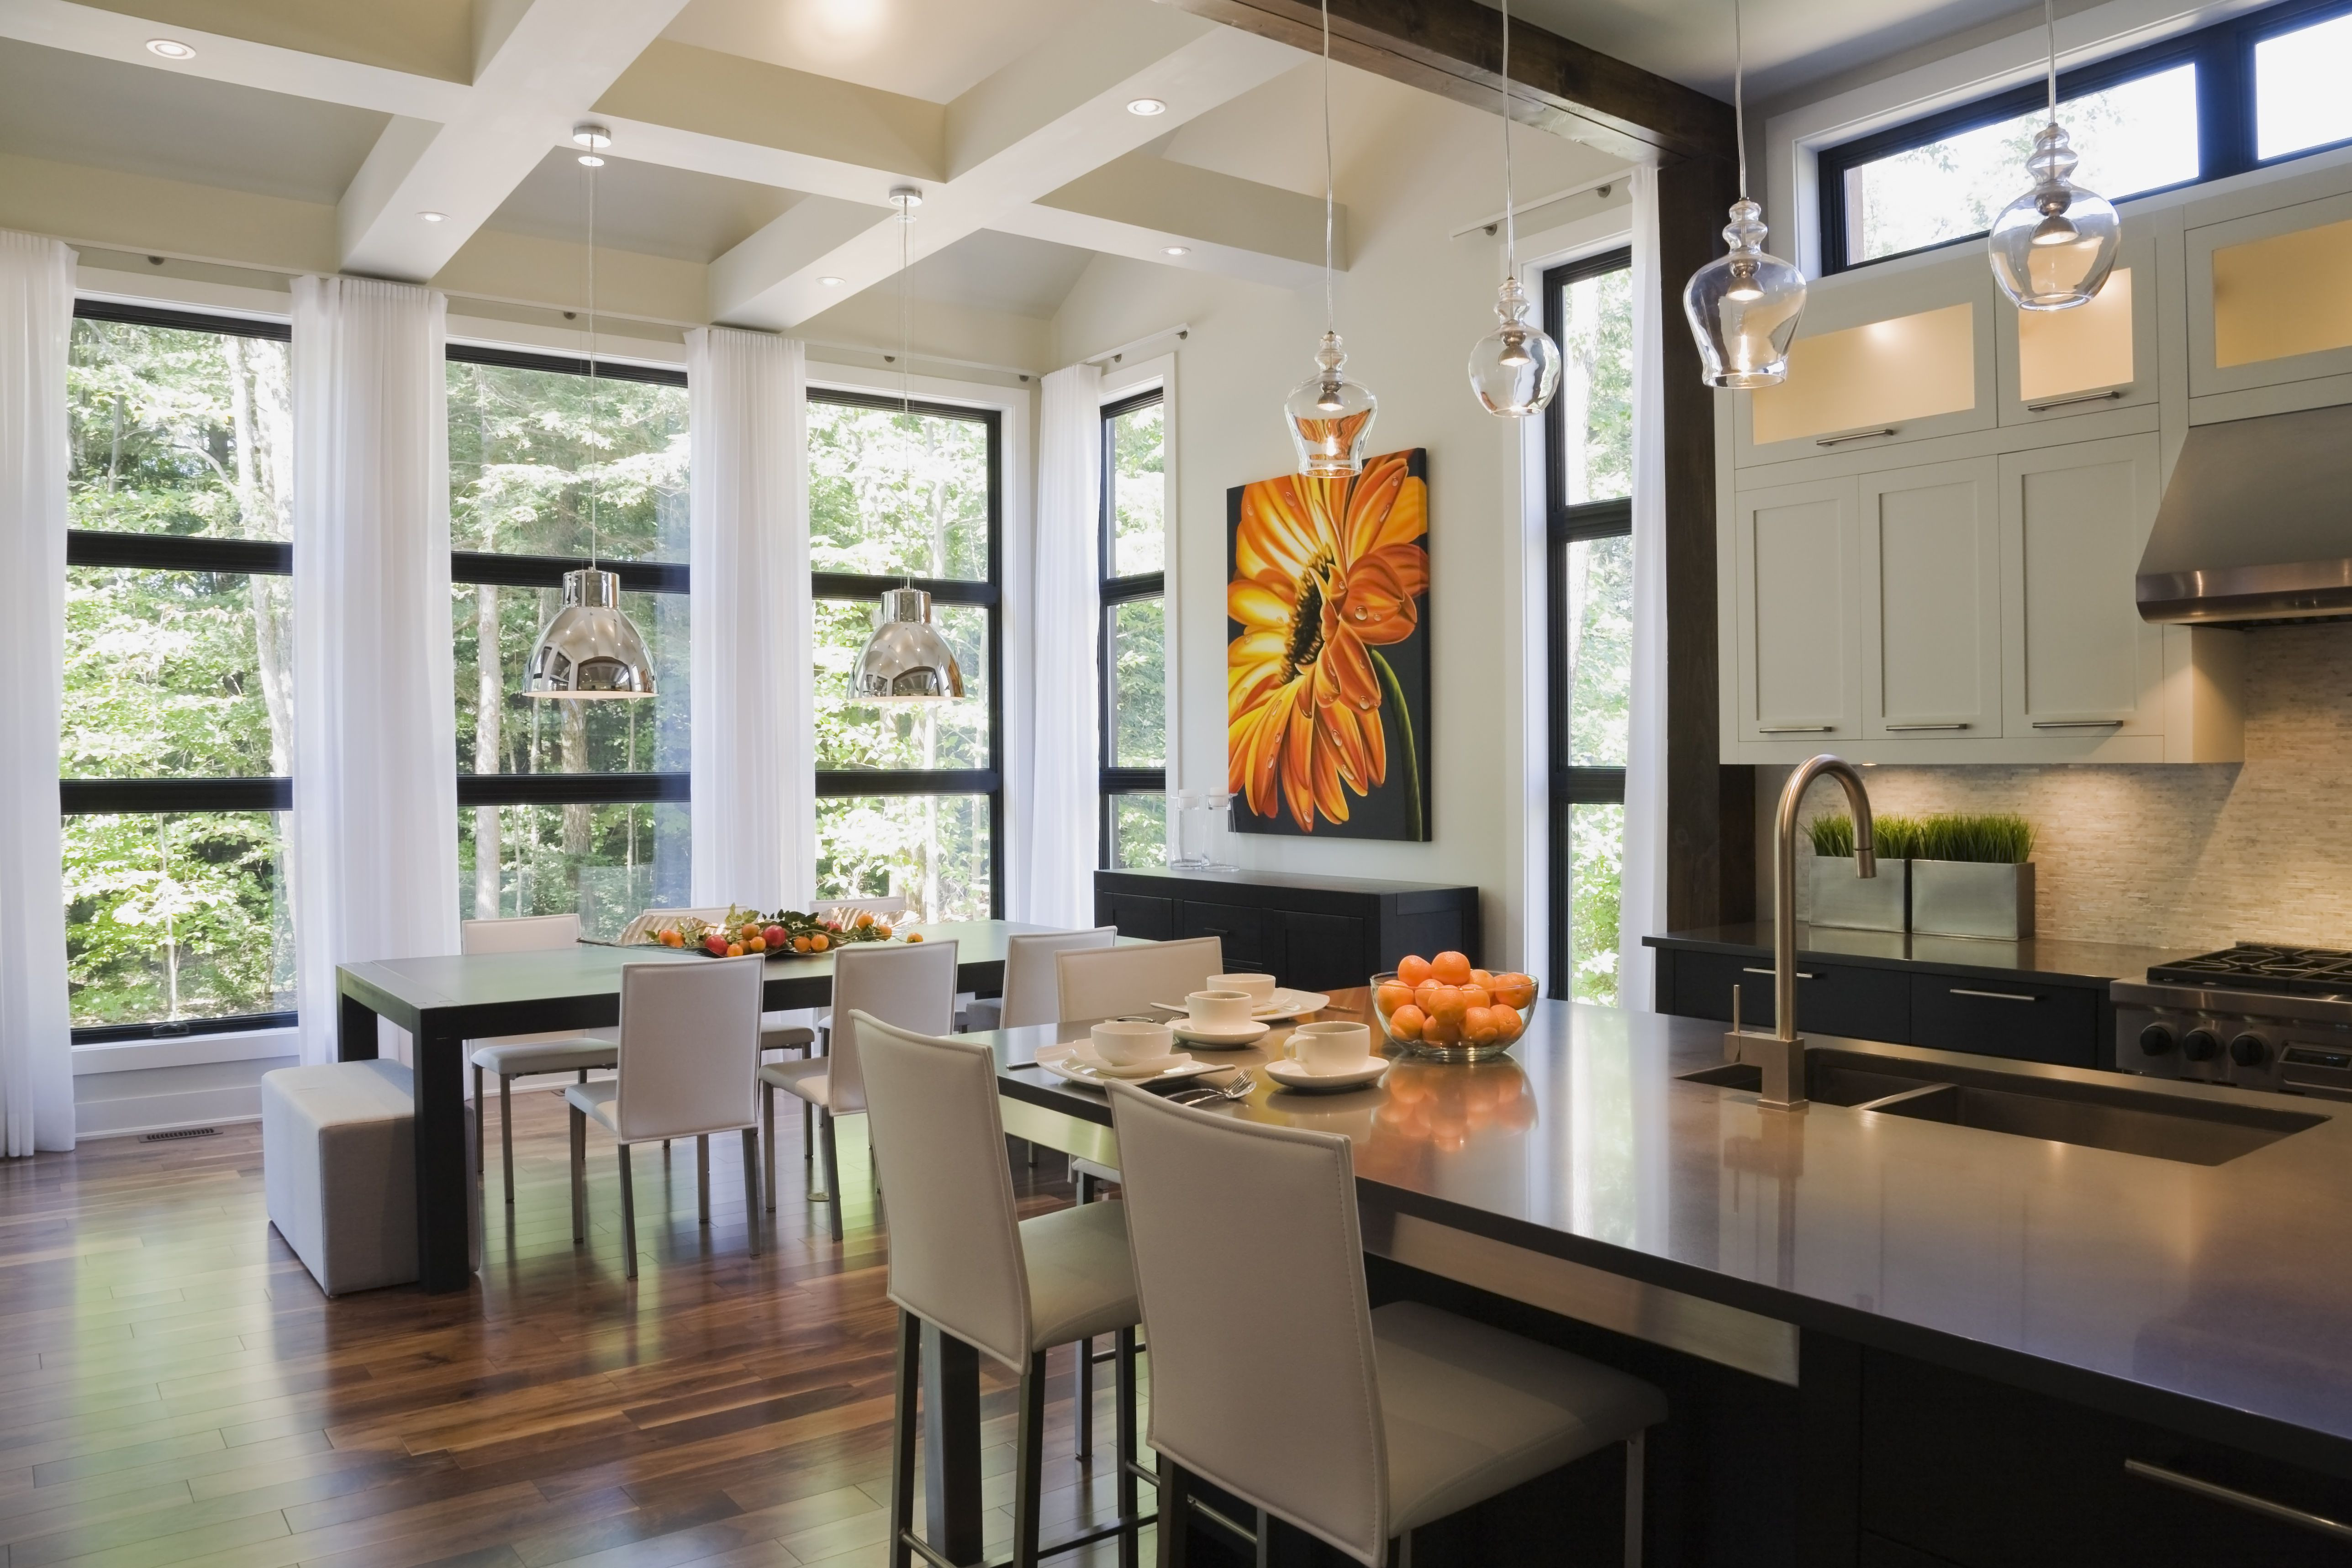 hardwood floor refinishers in my area of what you need to know about hardwood floors in kitchens in kitchen and dining room inside an upscale residential home quebec canada 519512485 5990dc4622fa3a0010356721